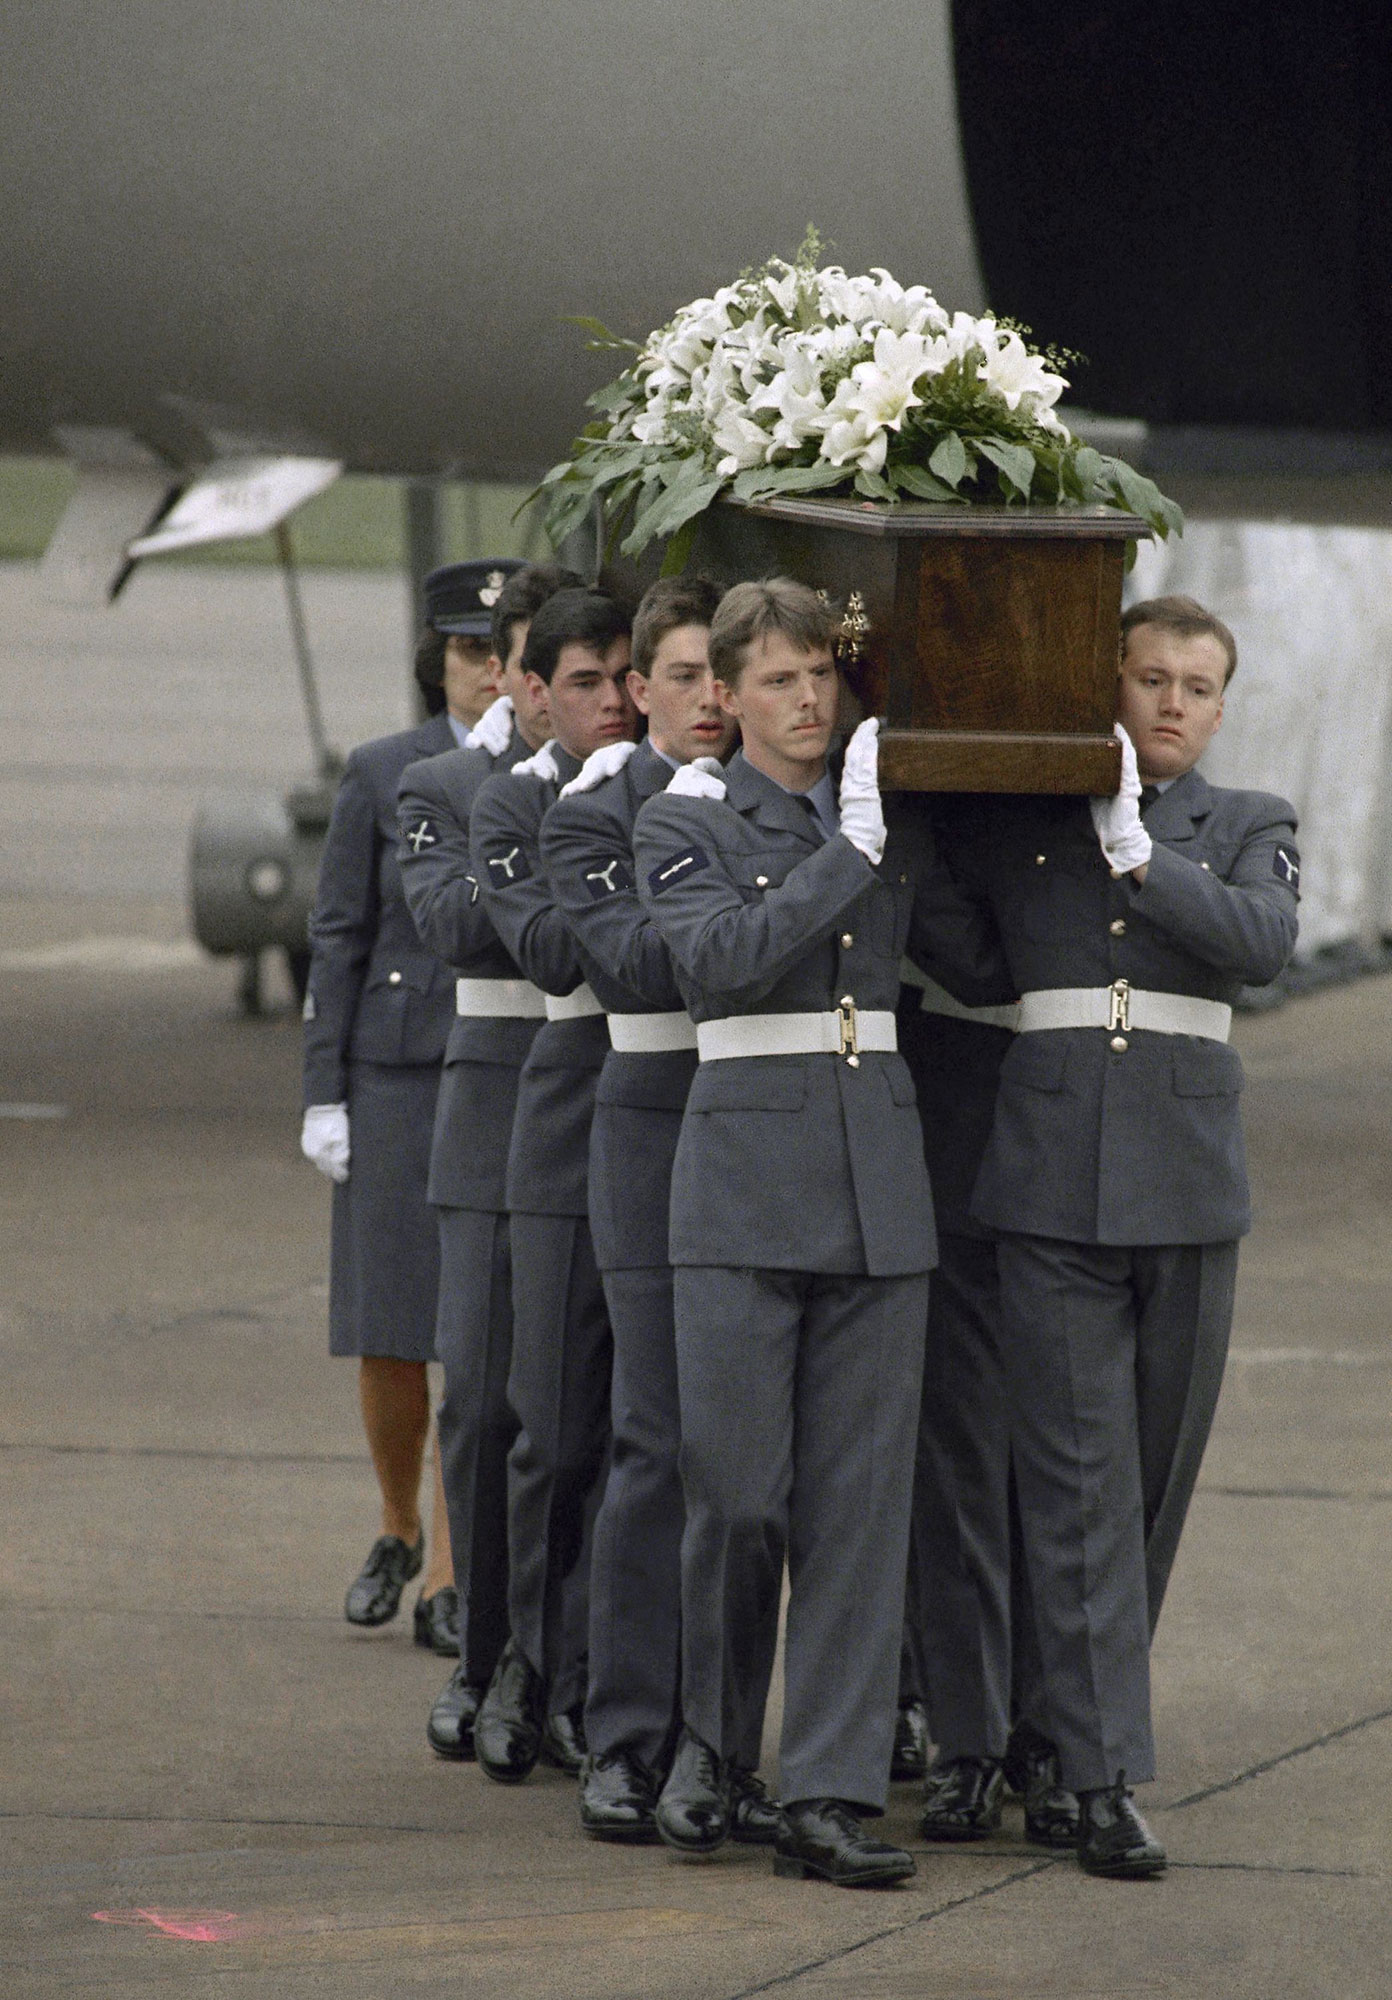 Duchess of Windsor funeral